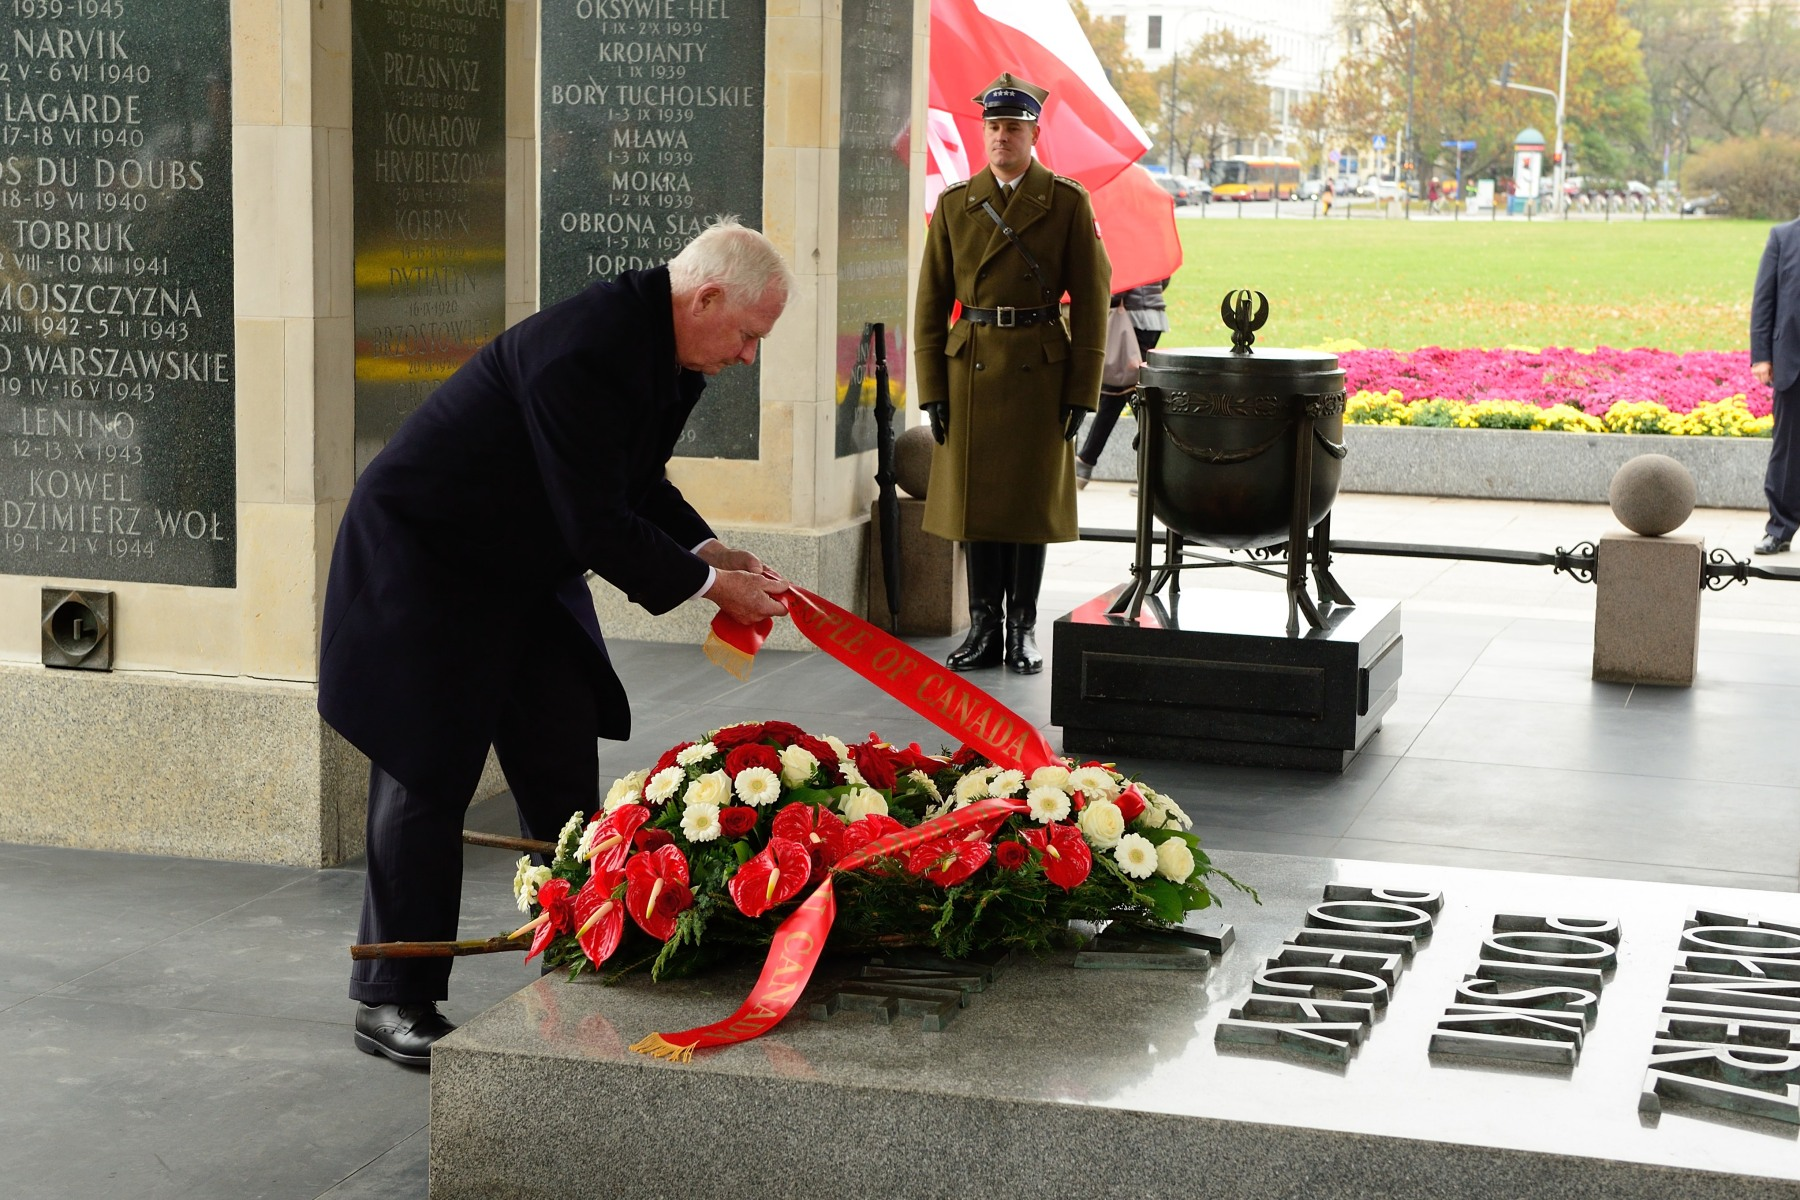 The Tomb of the Unknown Soldier was erected at Pilsudski Square, the largest square of Warsaw, on top of the underground foundations of the Saxon Palace, which was destroyed in World War II.